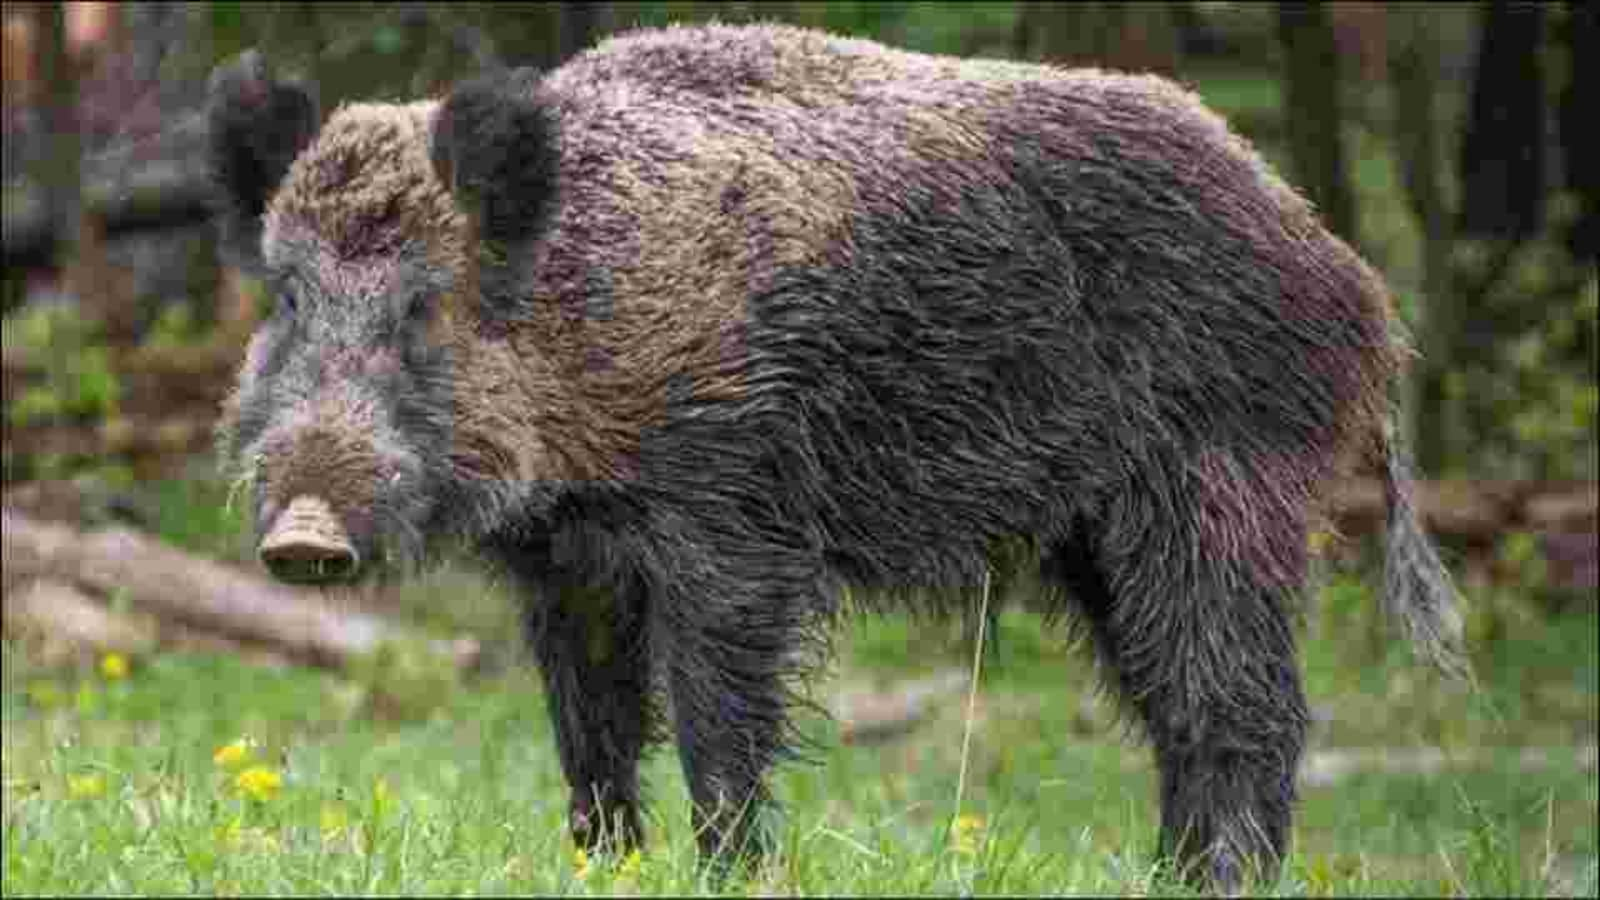 Wild boars resurface in Kashmir valley after almost 30 years